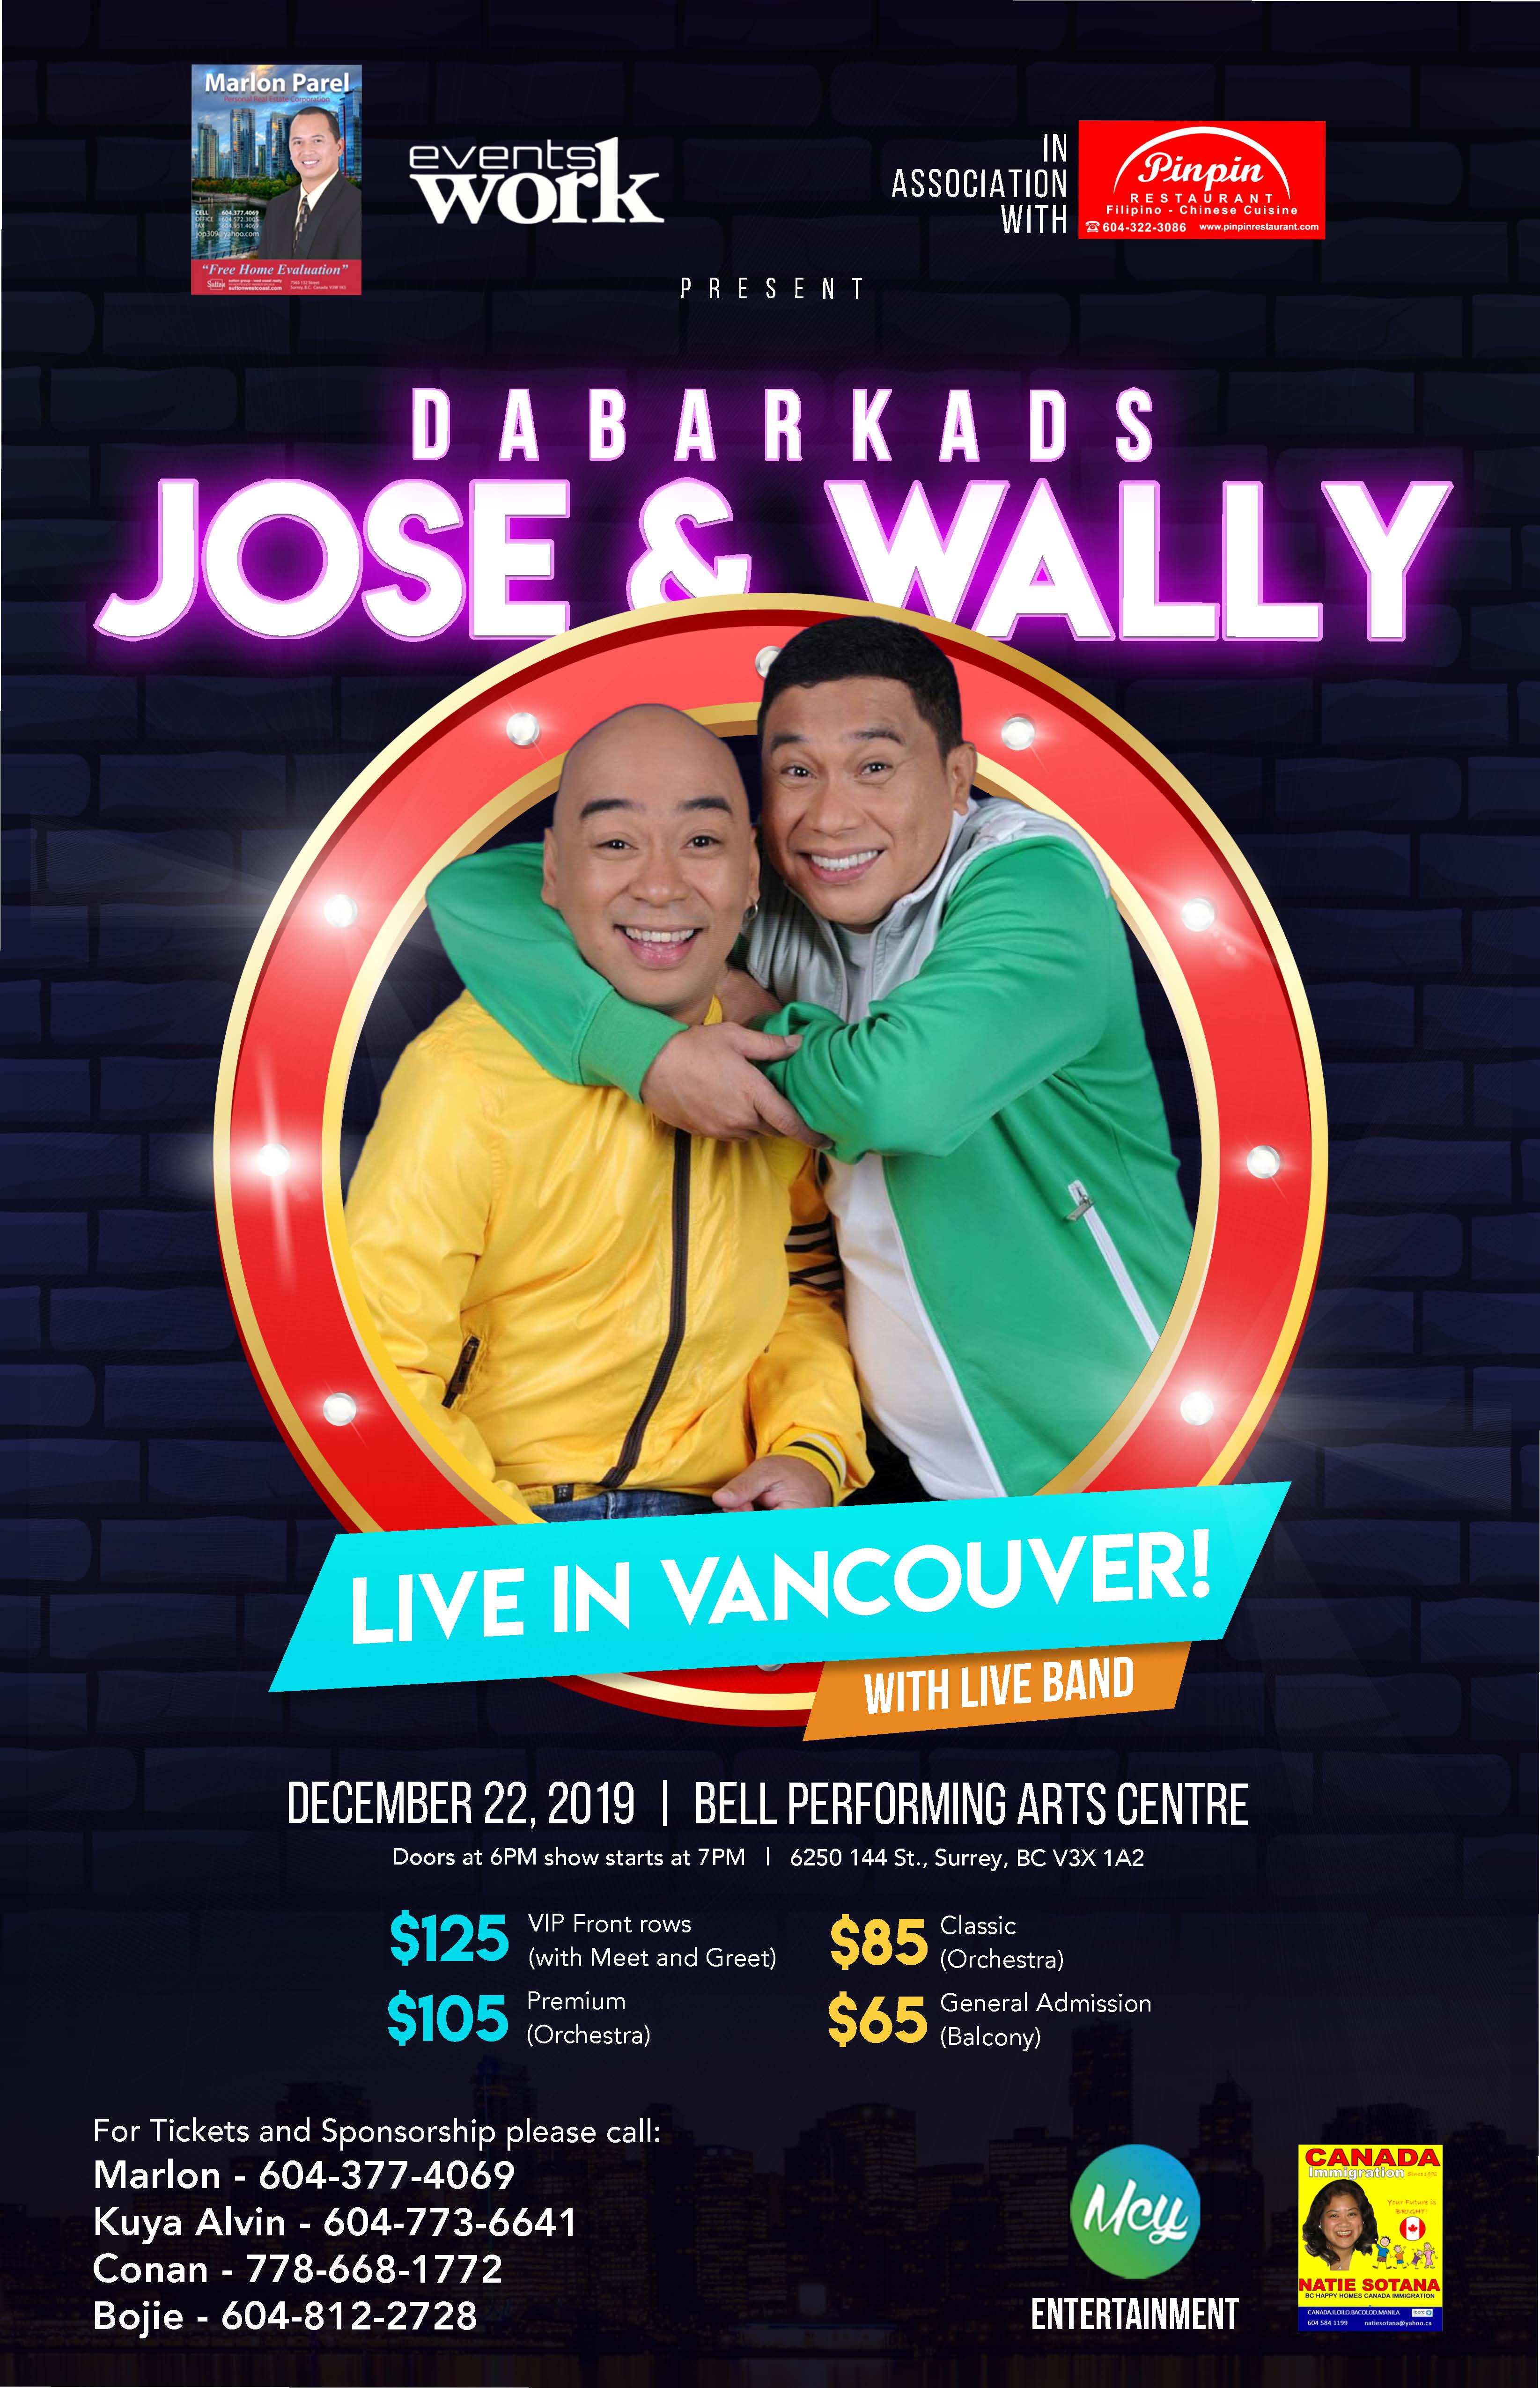 Jose and Wally